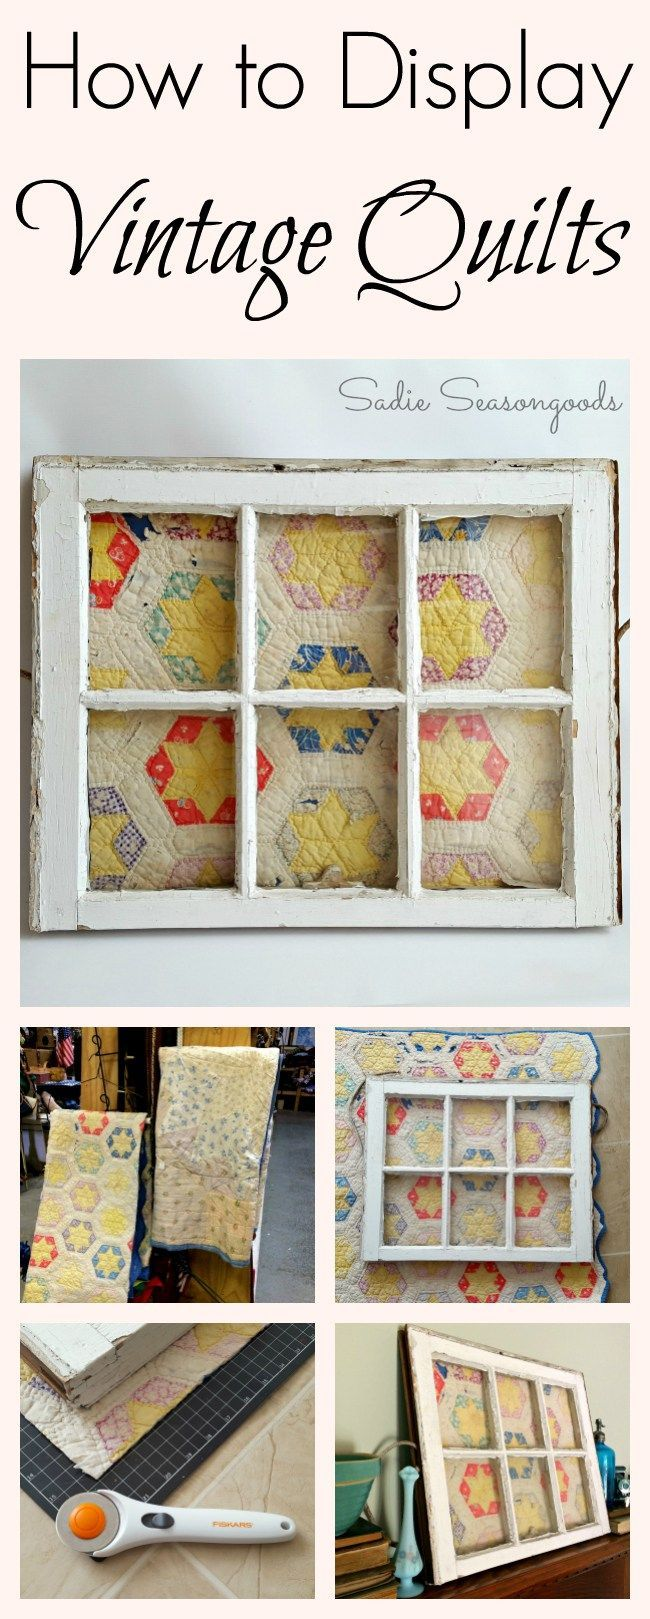 Old Window Frame Projects Best 25 Window Frame Crafts Ideas Only On Pinterest Old Window